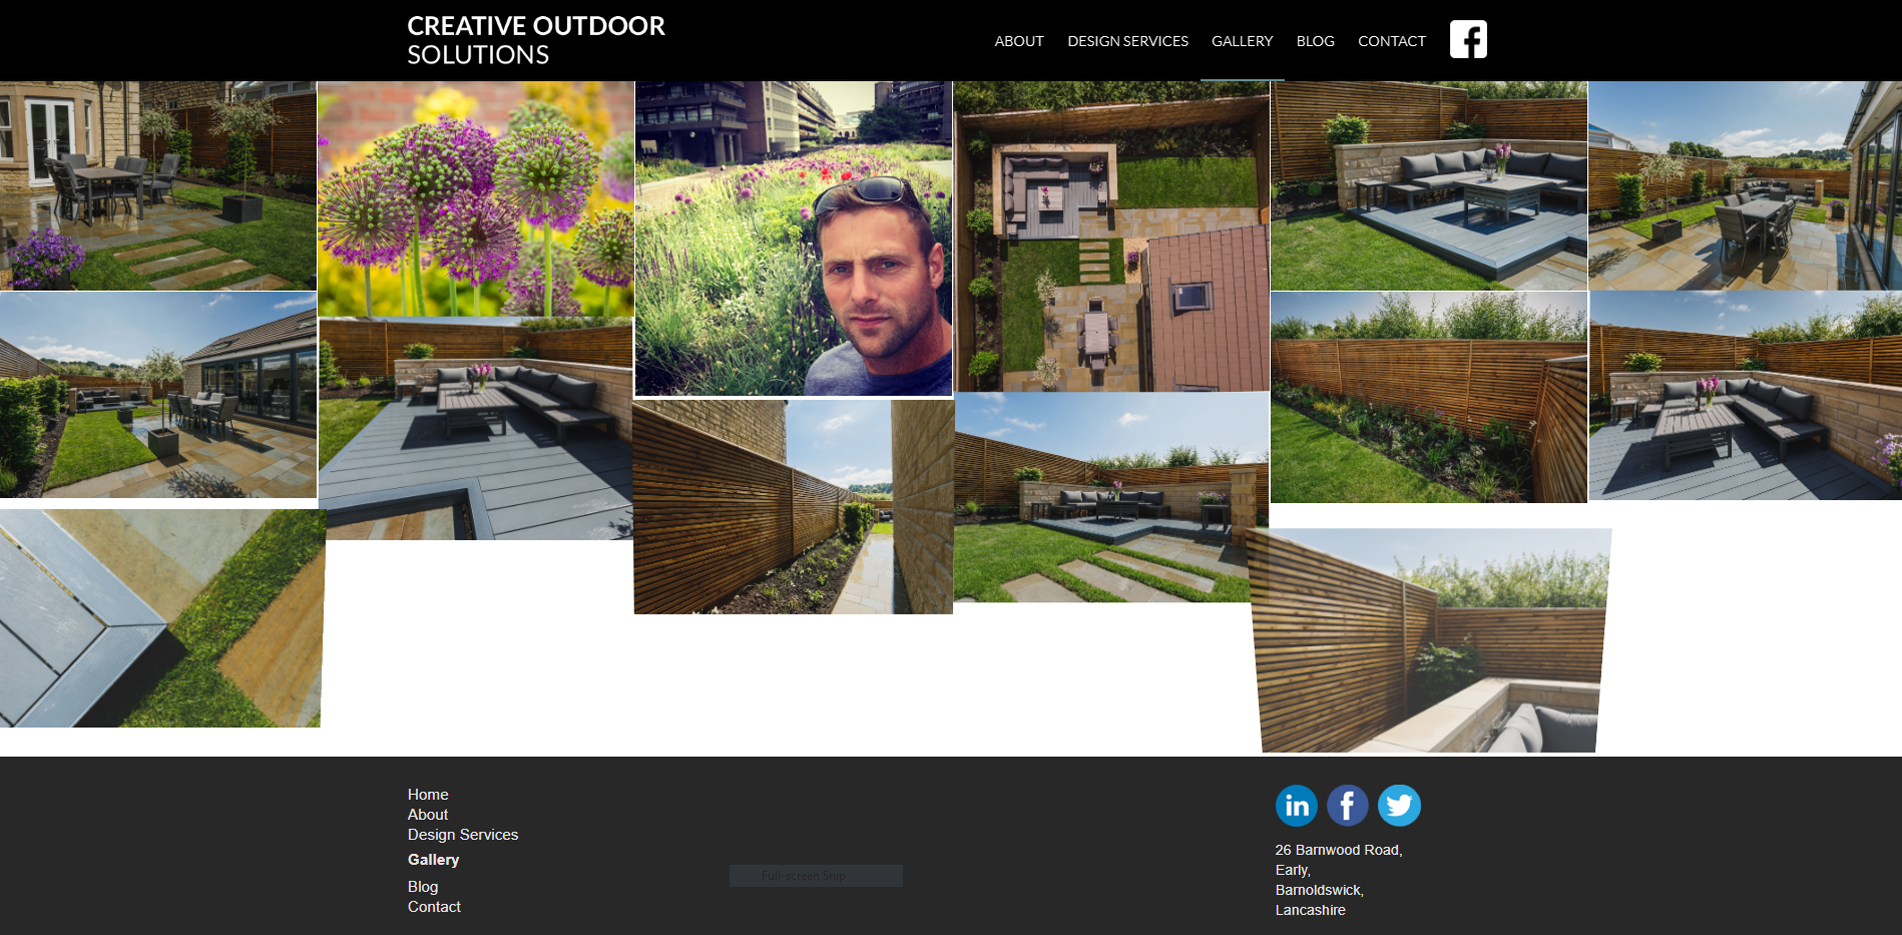 Creative Outdoor Solutions website design